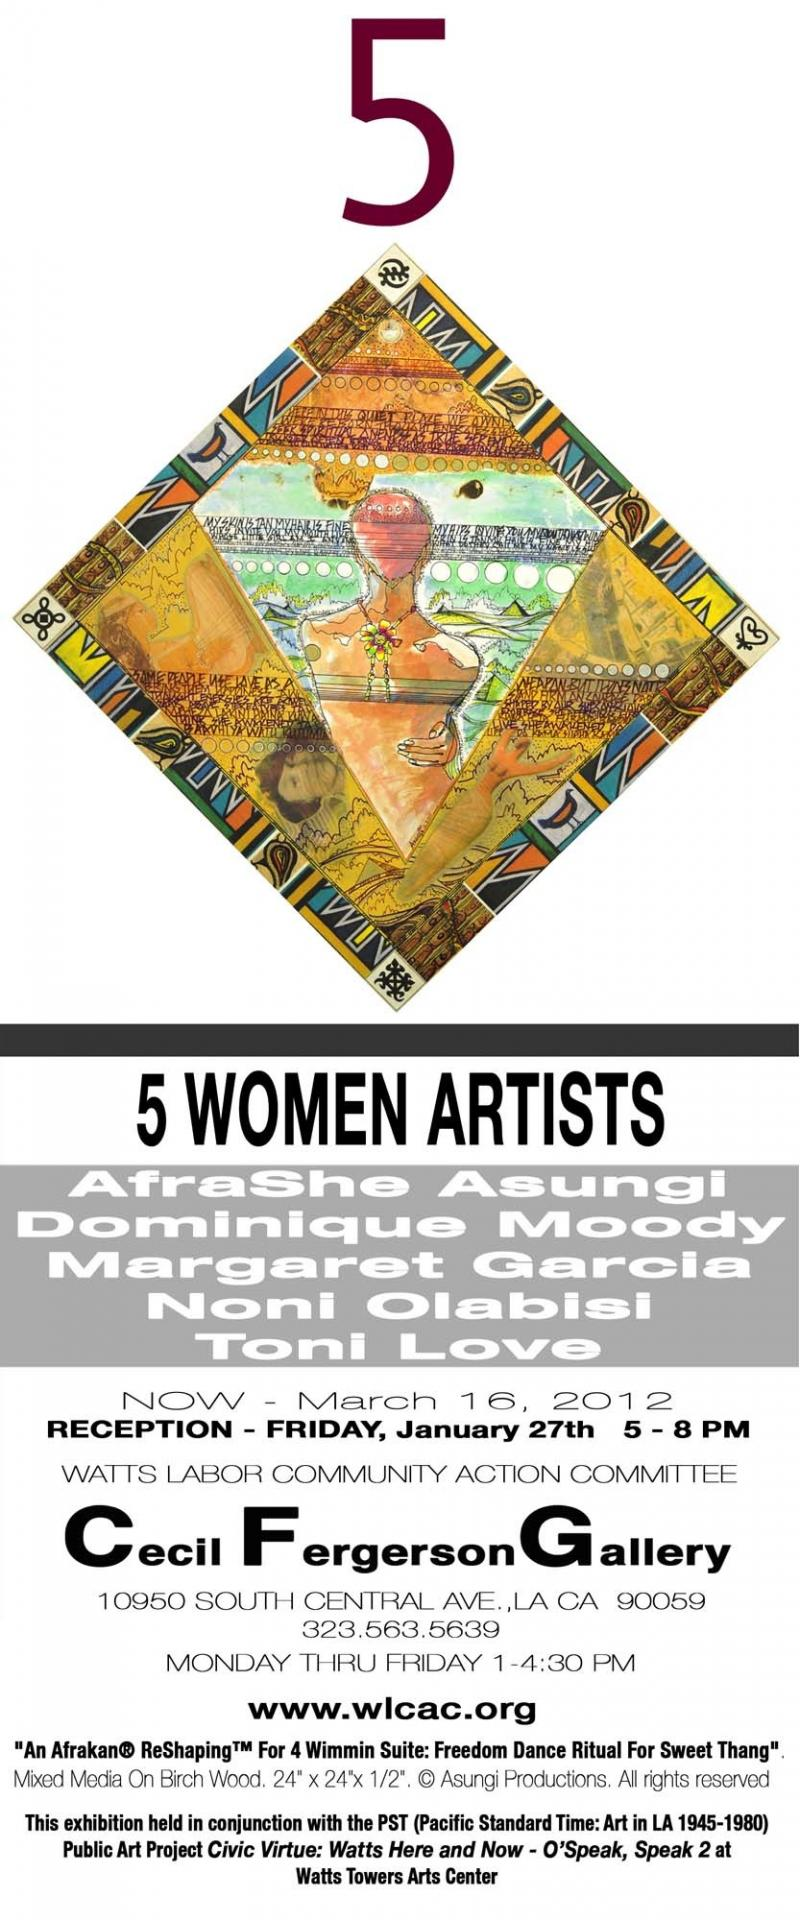 5 Women Artists@  F Gallery Announcement 12 /2011